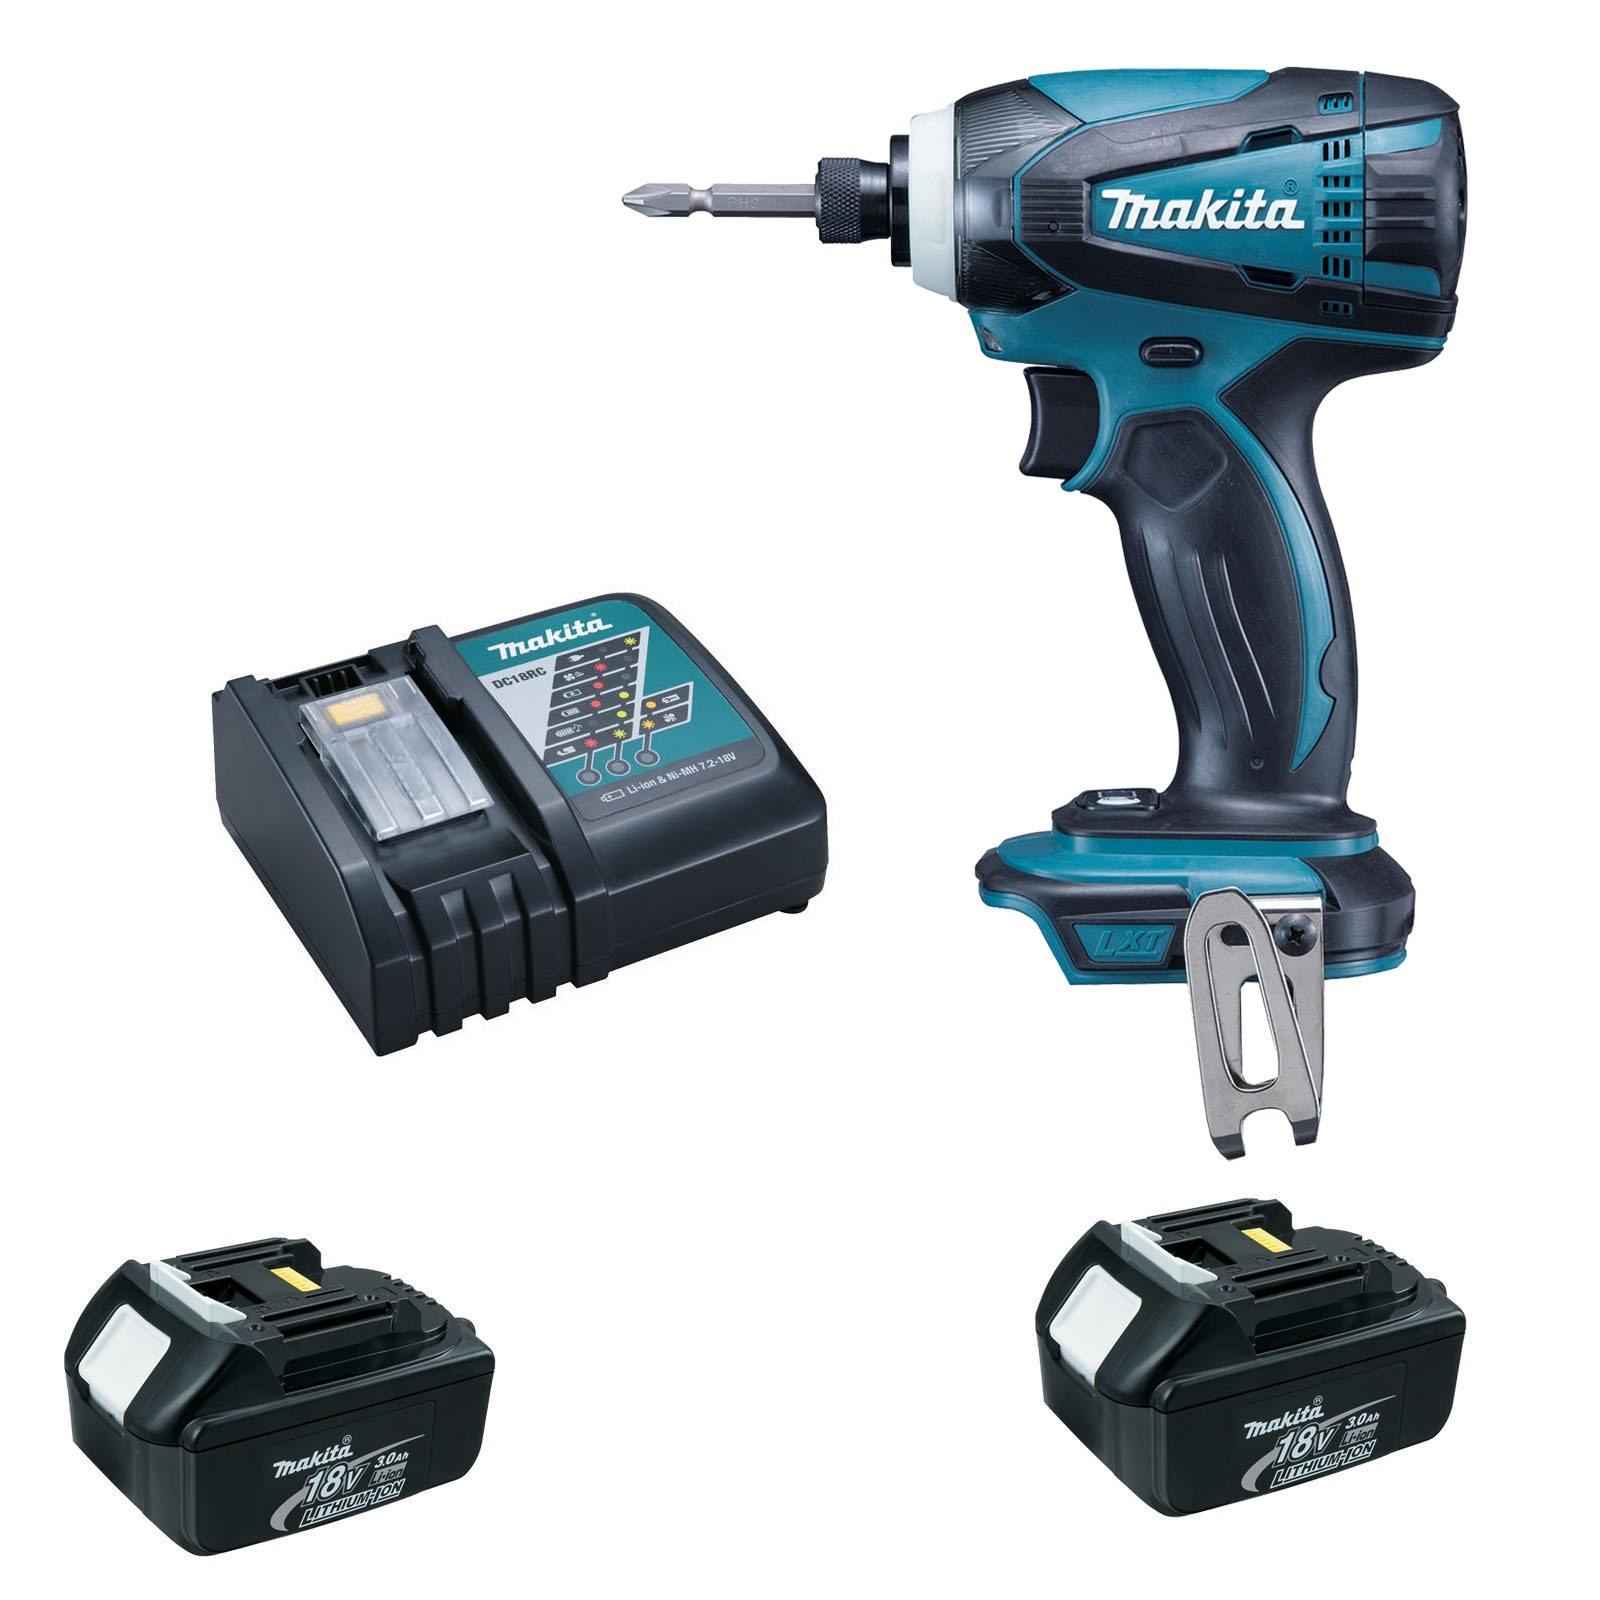 Impact Driver 18V, 2 x 3.0Ah batteries & charger